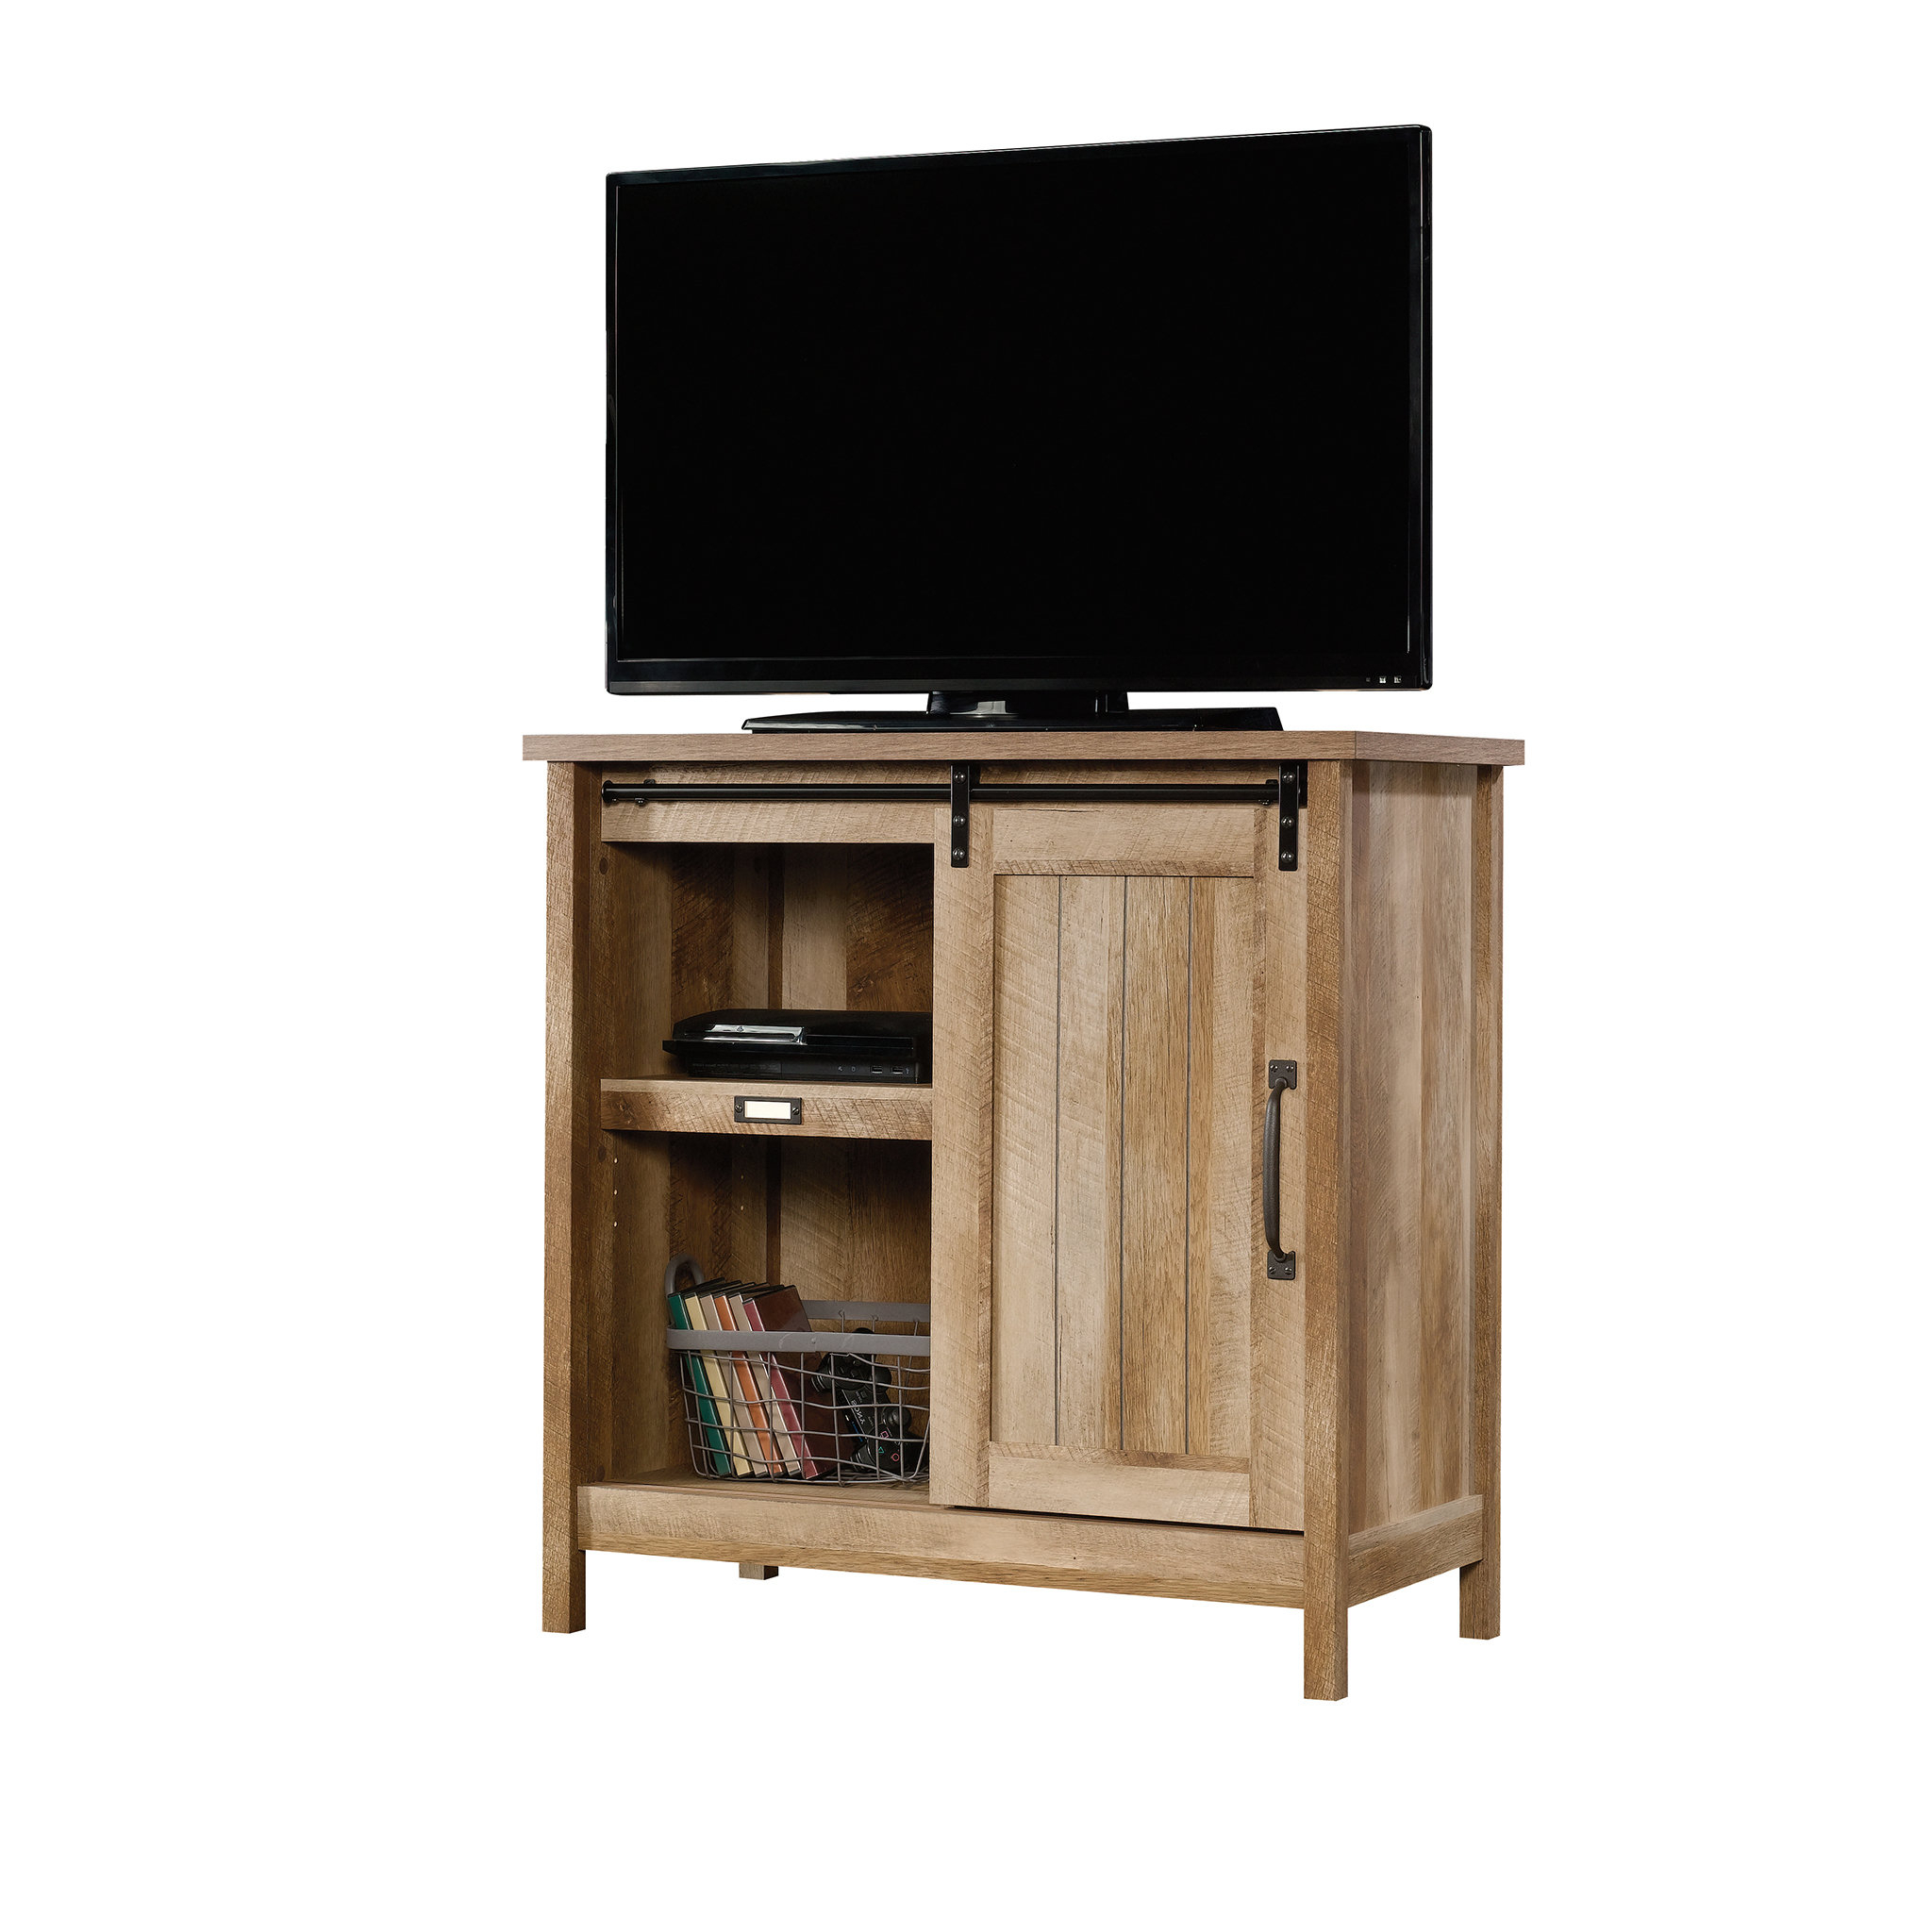 Tall Tv Corner Cabinet (View 16 of 20)